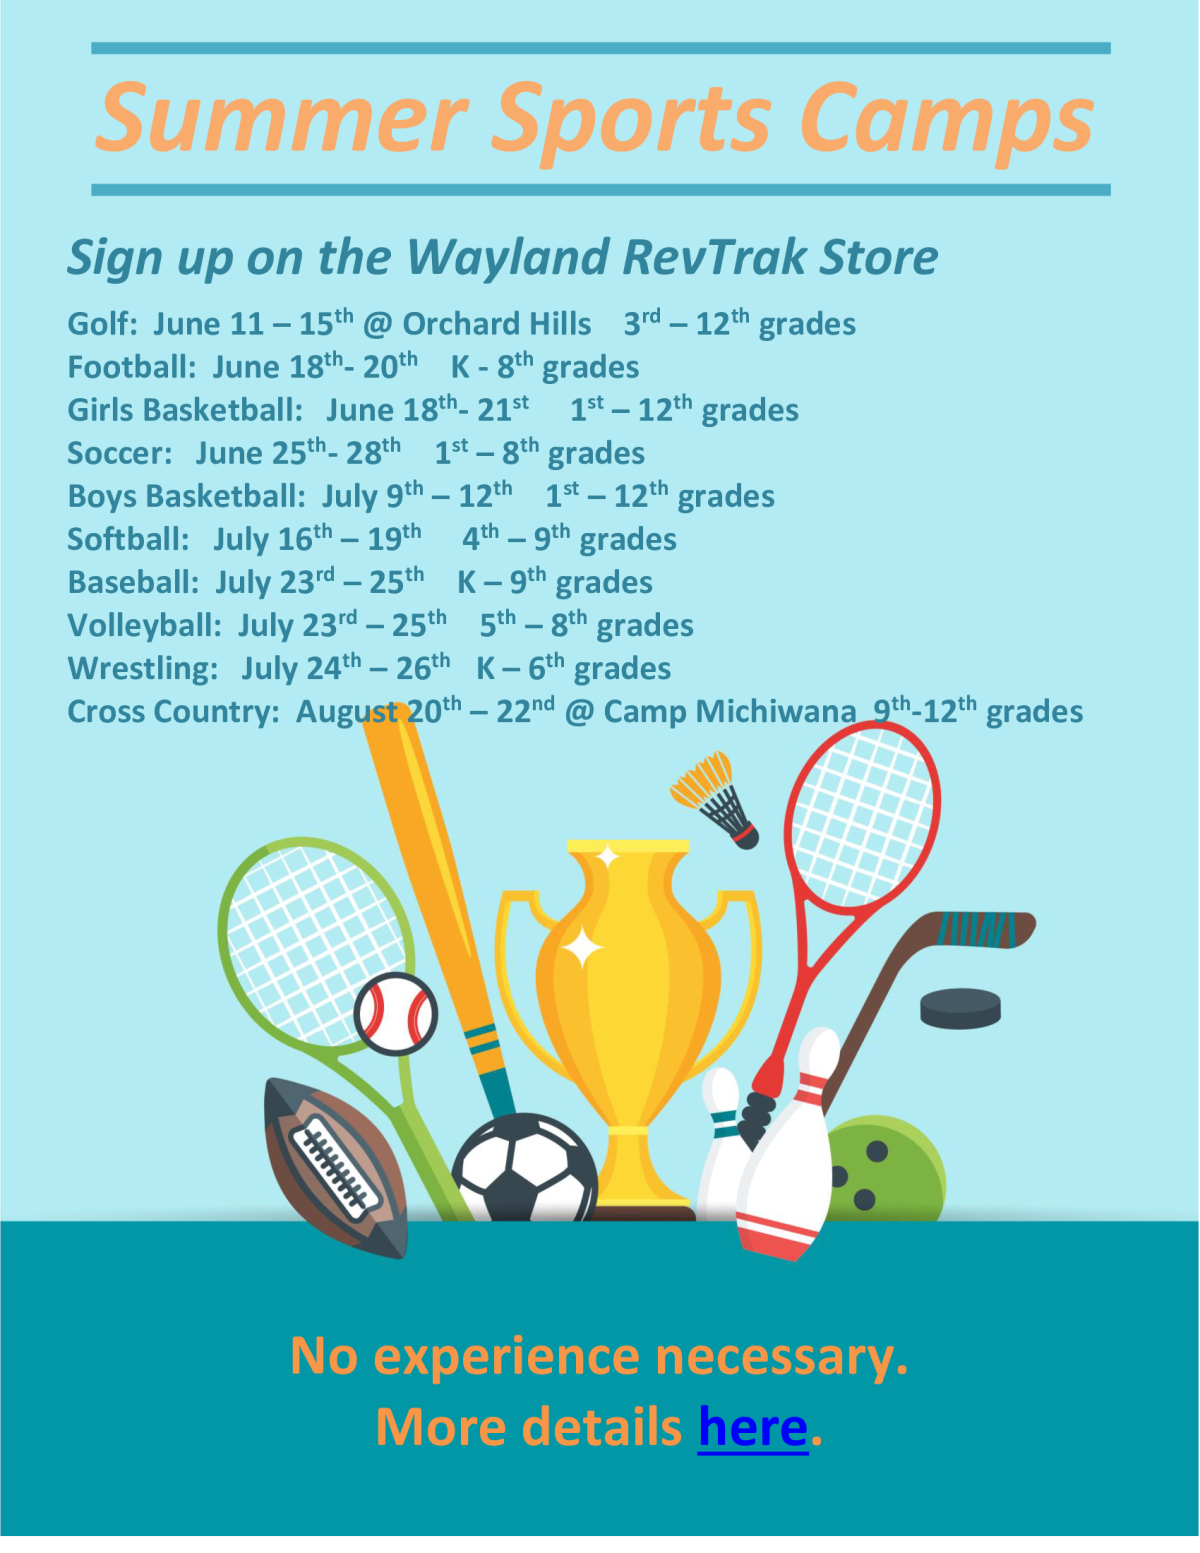 Summer Sports Camps 2018 (Updated 5/31)